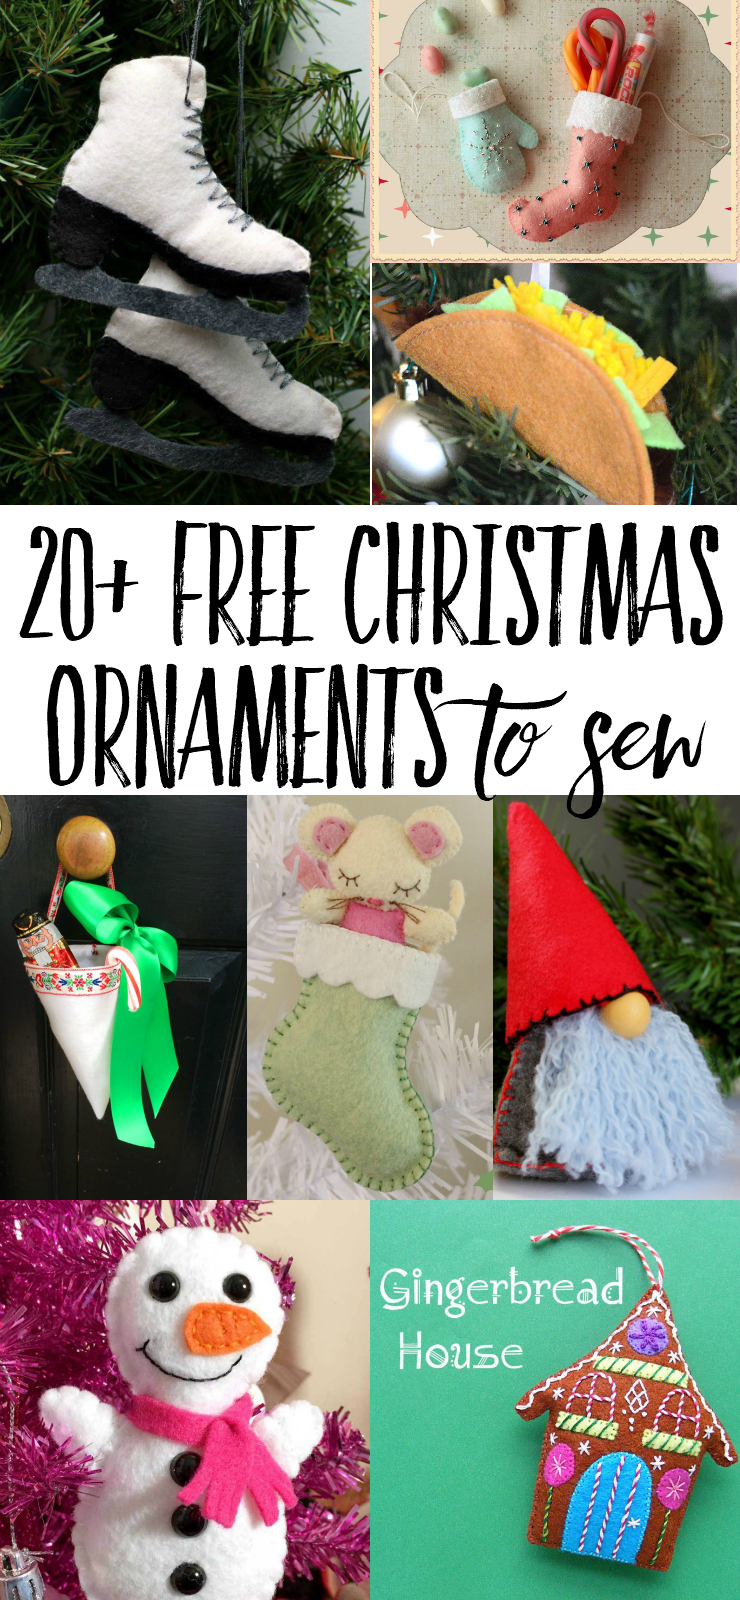 Check out this long list of free felt Christmas ornaments! Free sewing patterns and tutorials make these diy ornaments simple and fun to make, perfect for handmade Christmas gifts. #diyfeltchristmasornament